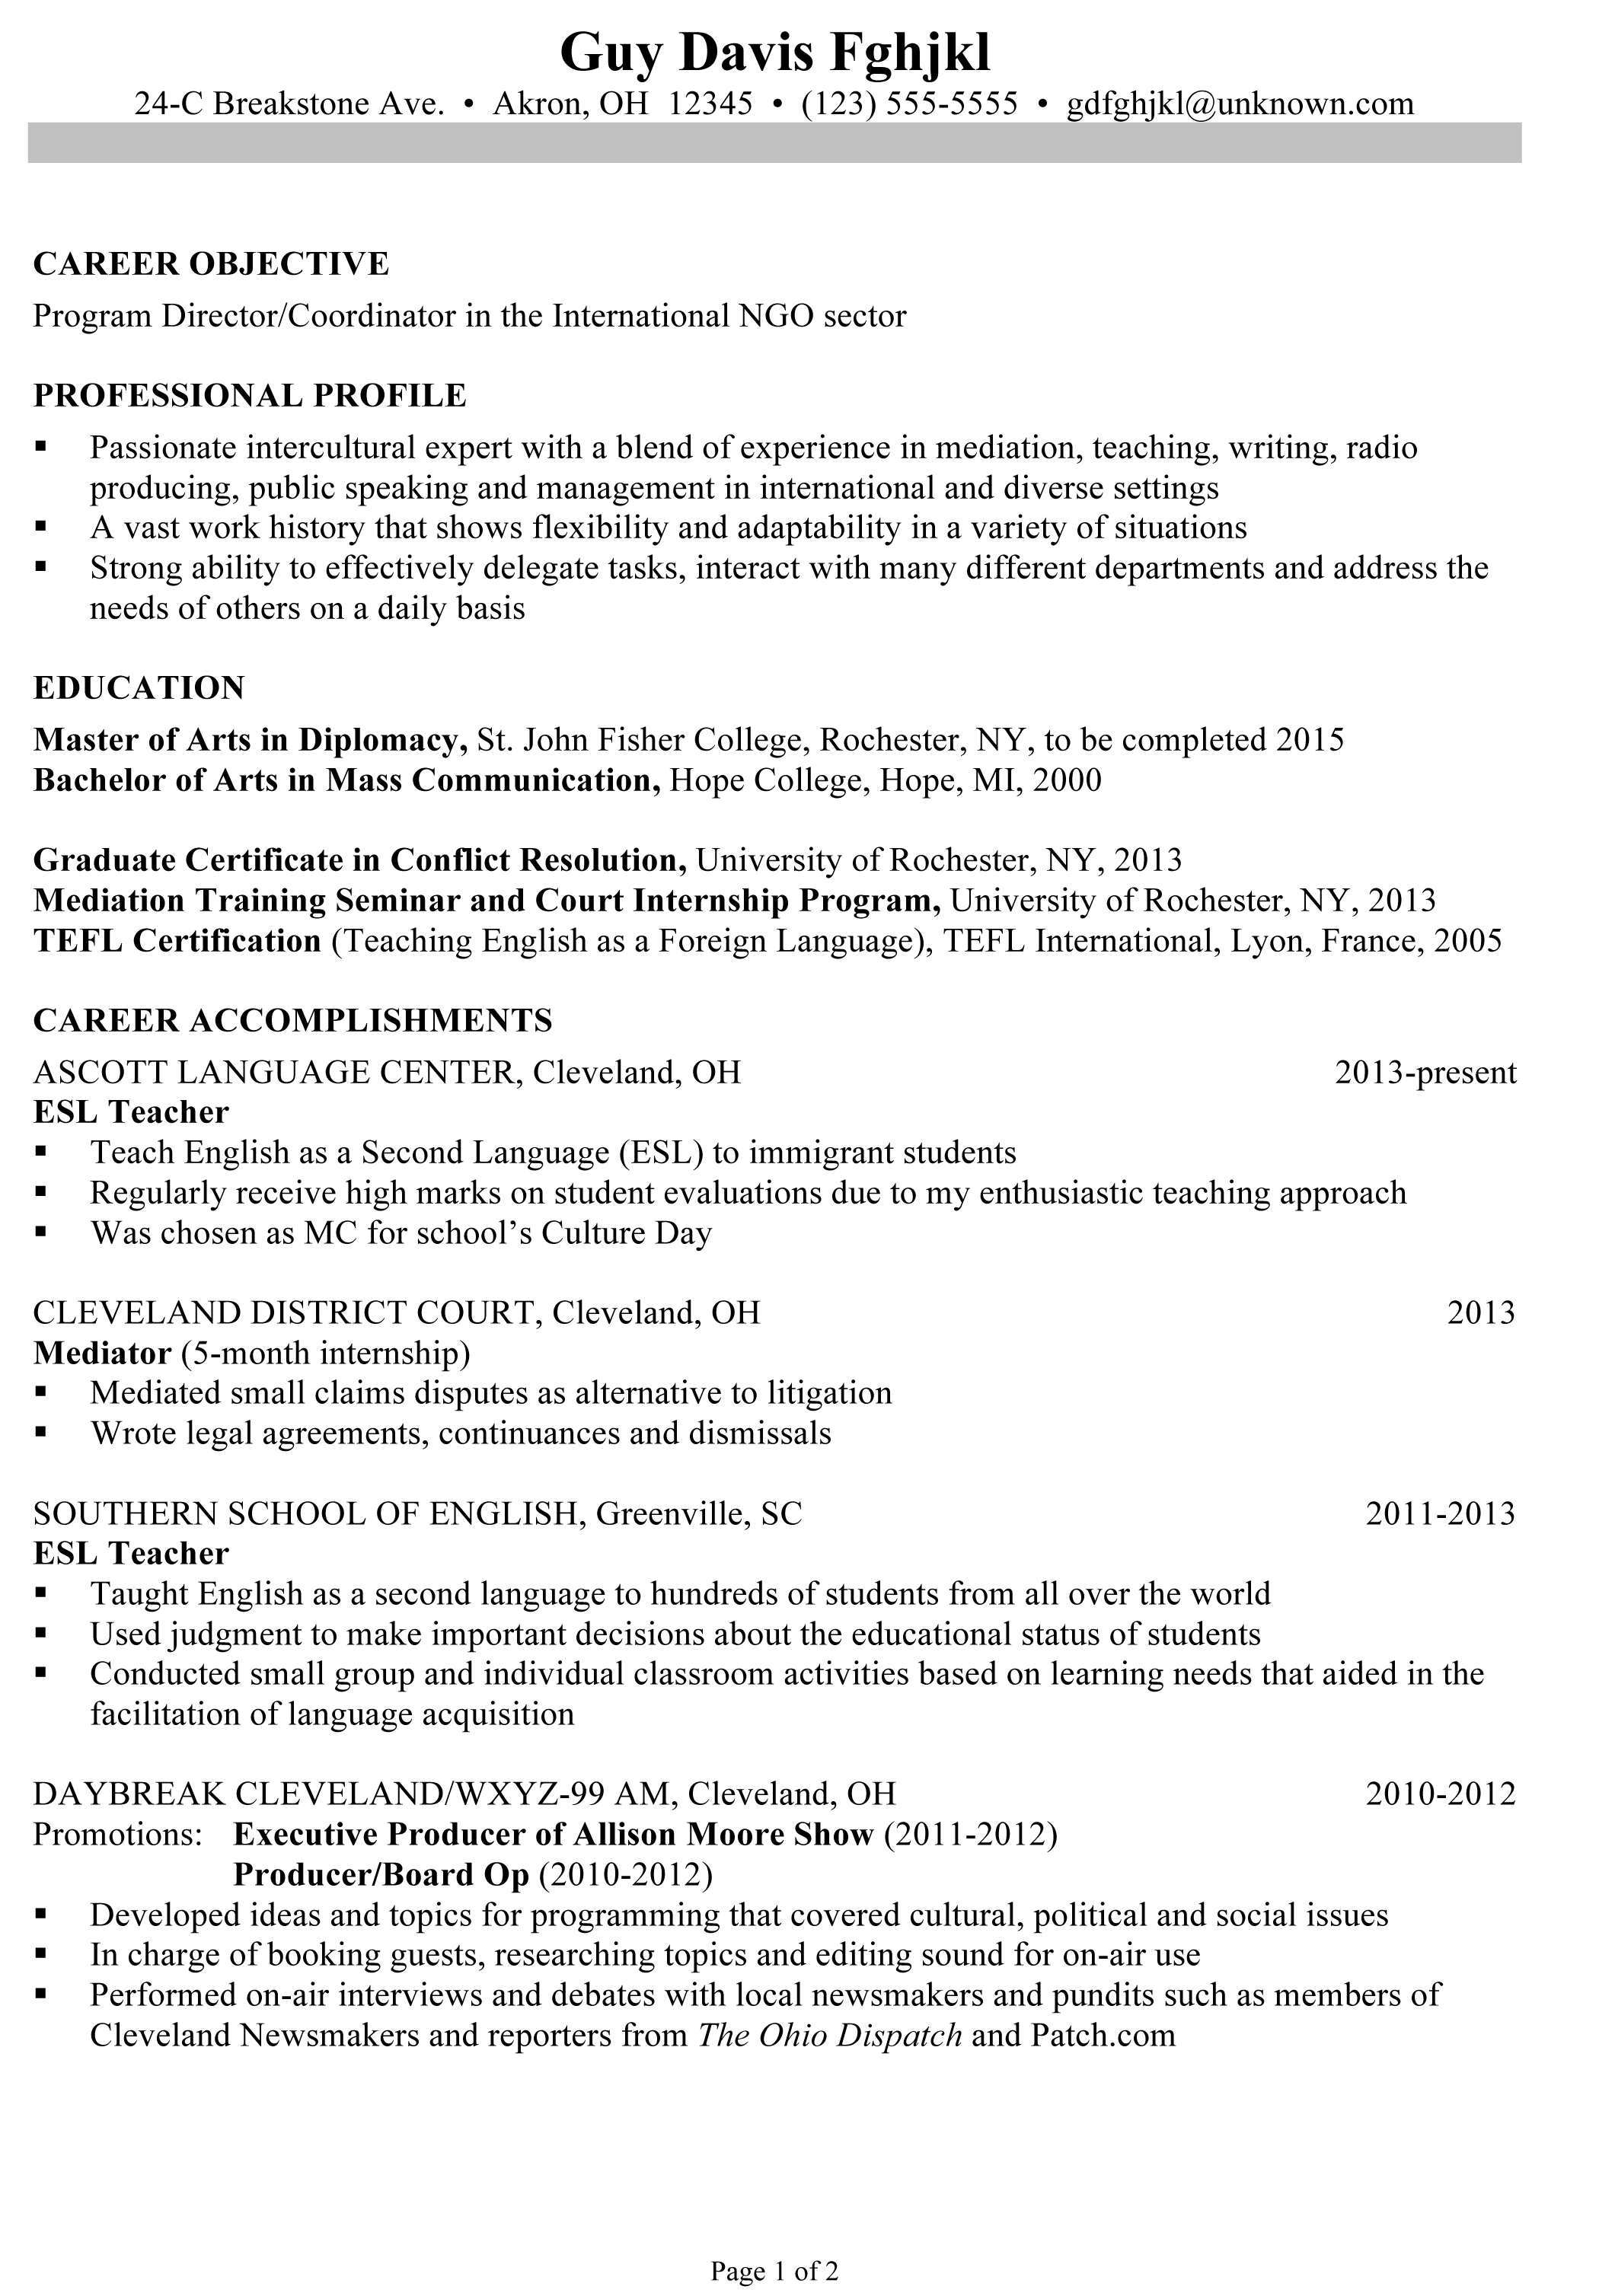 Professional summary resume example best templatesample resumes professional summary resume example best templatesample resumes cover letter examples altavistaventures Images